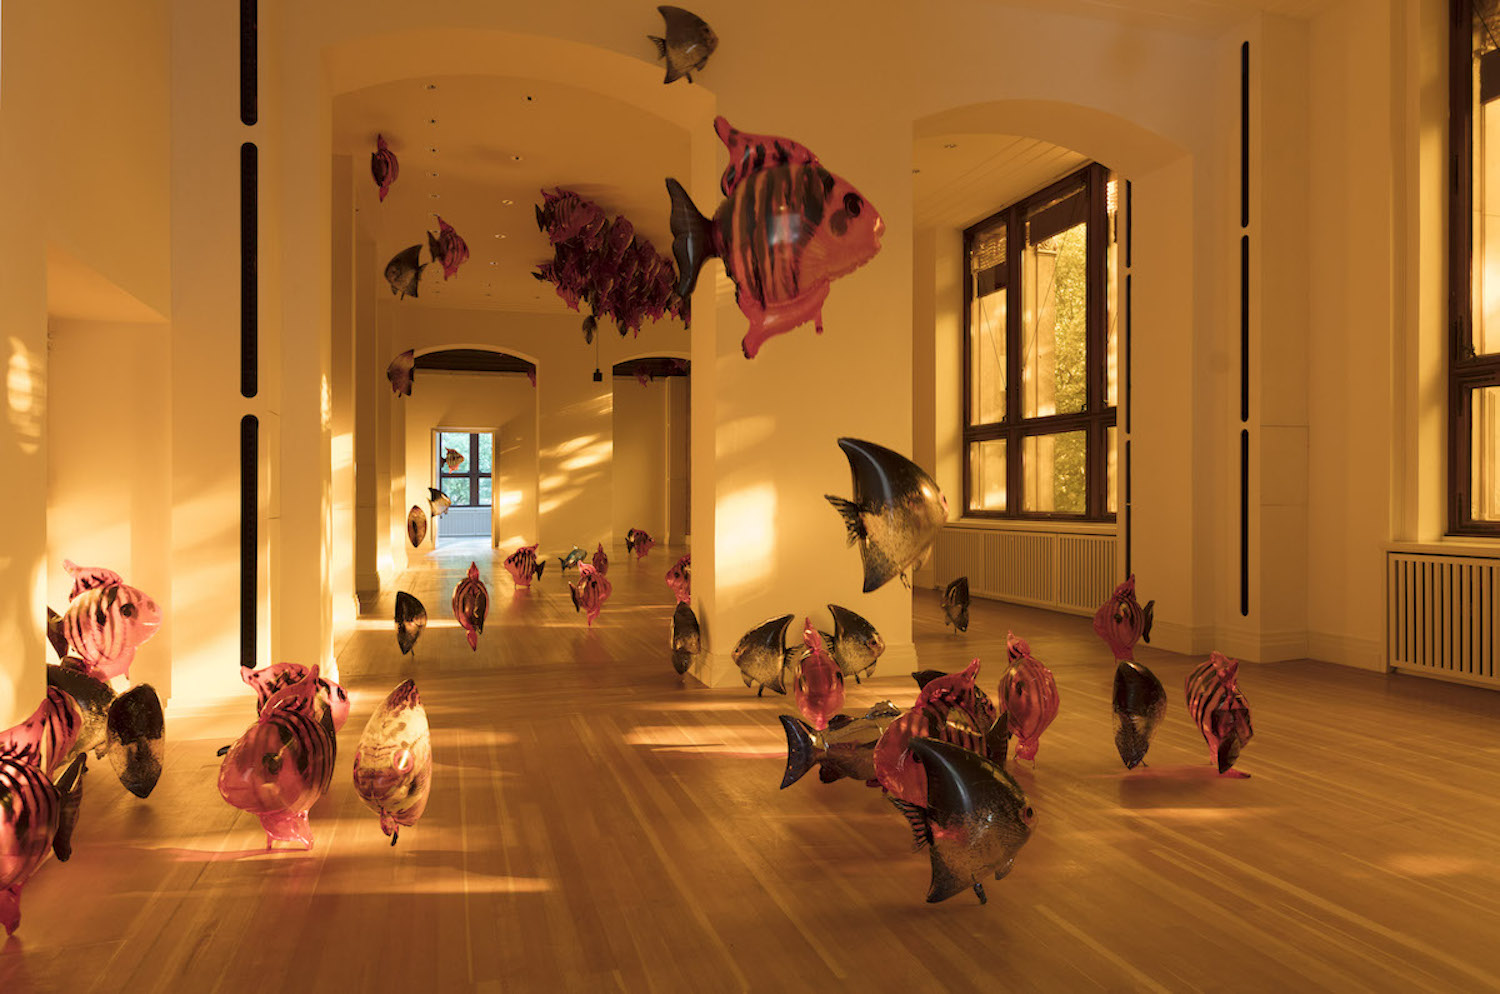 Philippe Parreno, My Room Is Another Fish Bowl, 2018. Martin Gropius Bau Berlin, 2018. Courtesy of Philippe Parreno, Pilar Corrias Gallery, and Igal Ahouvi Art Collection.